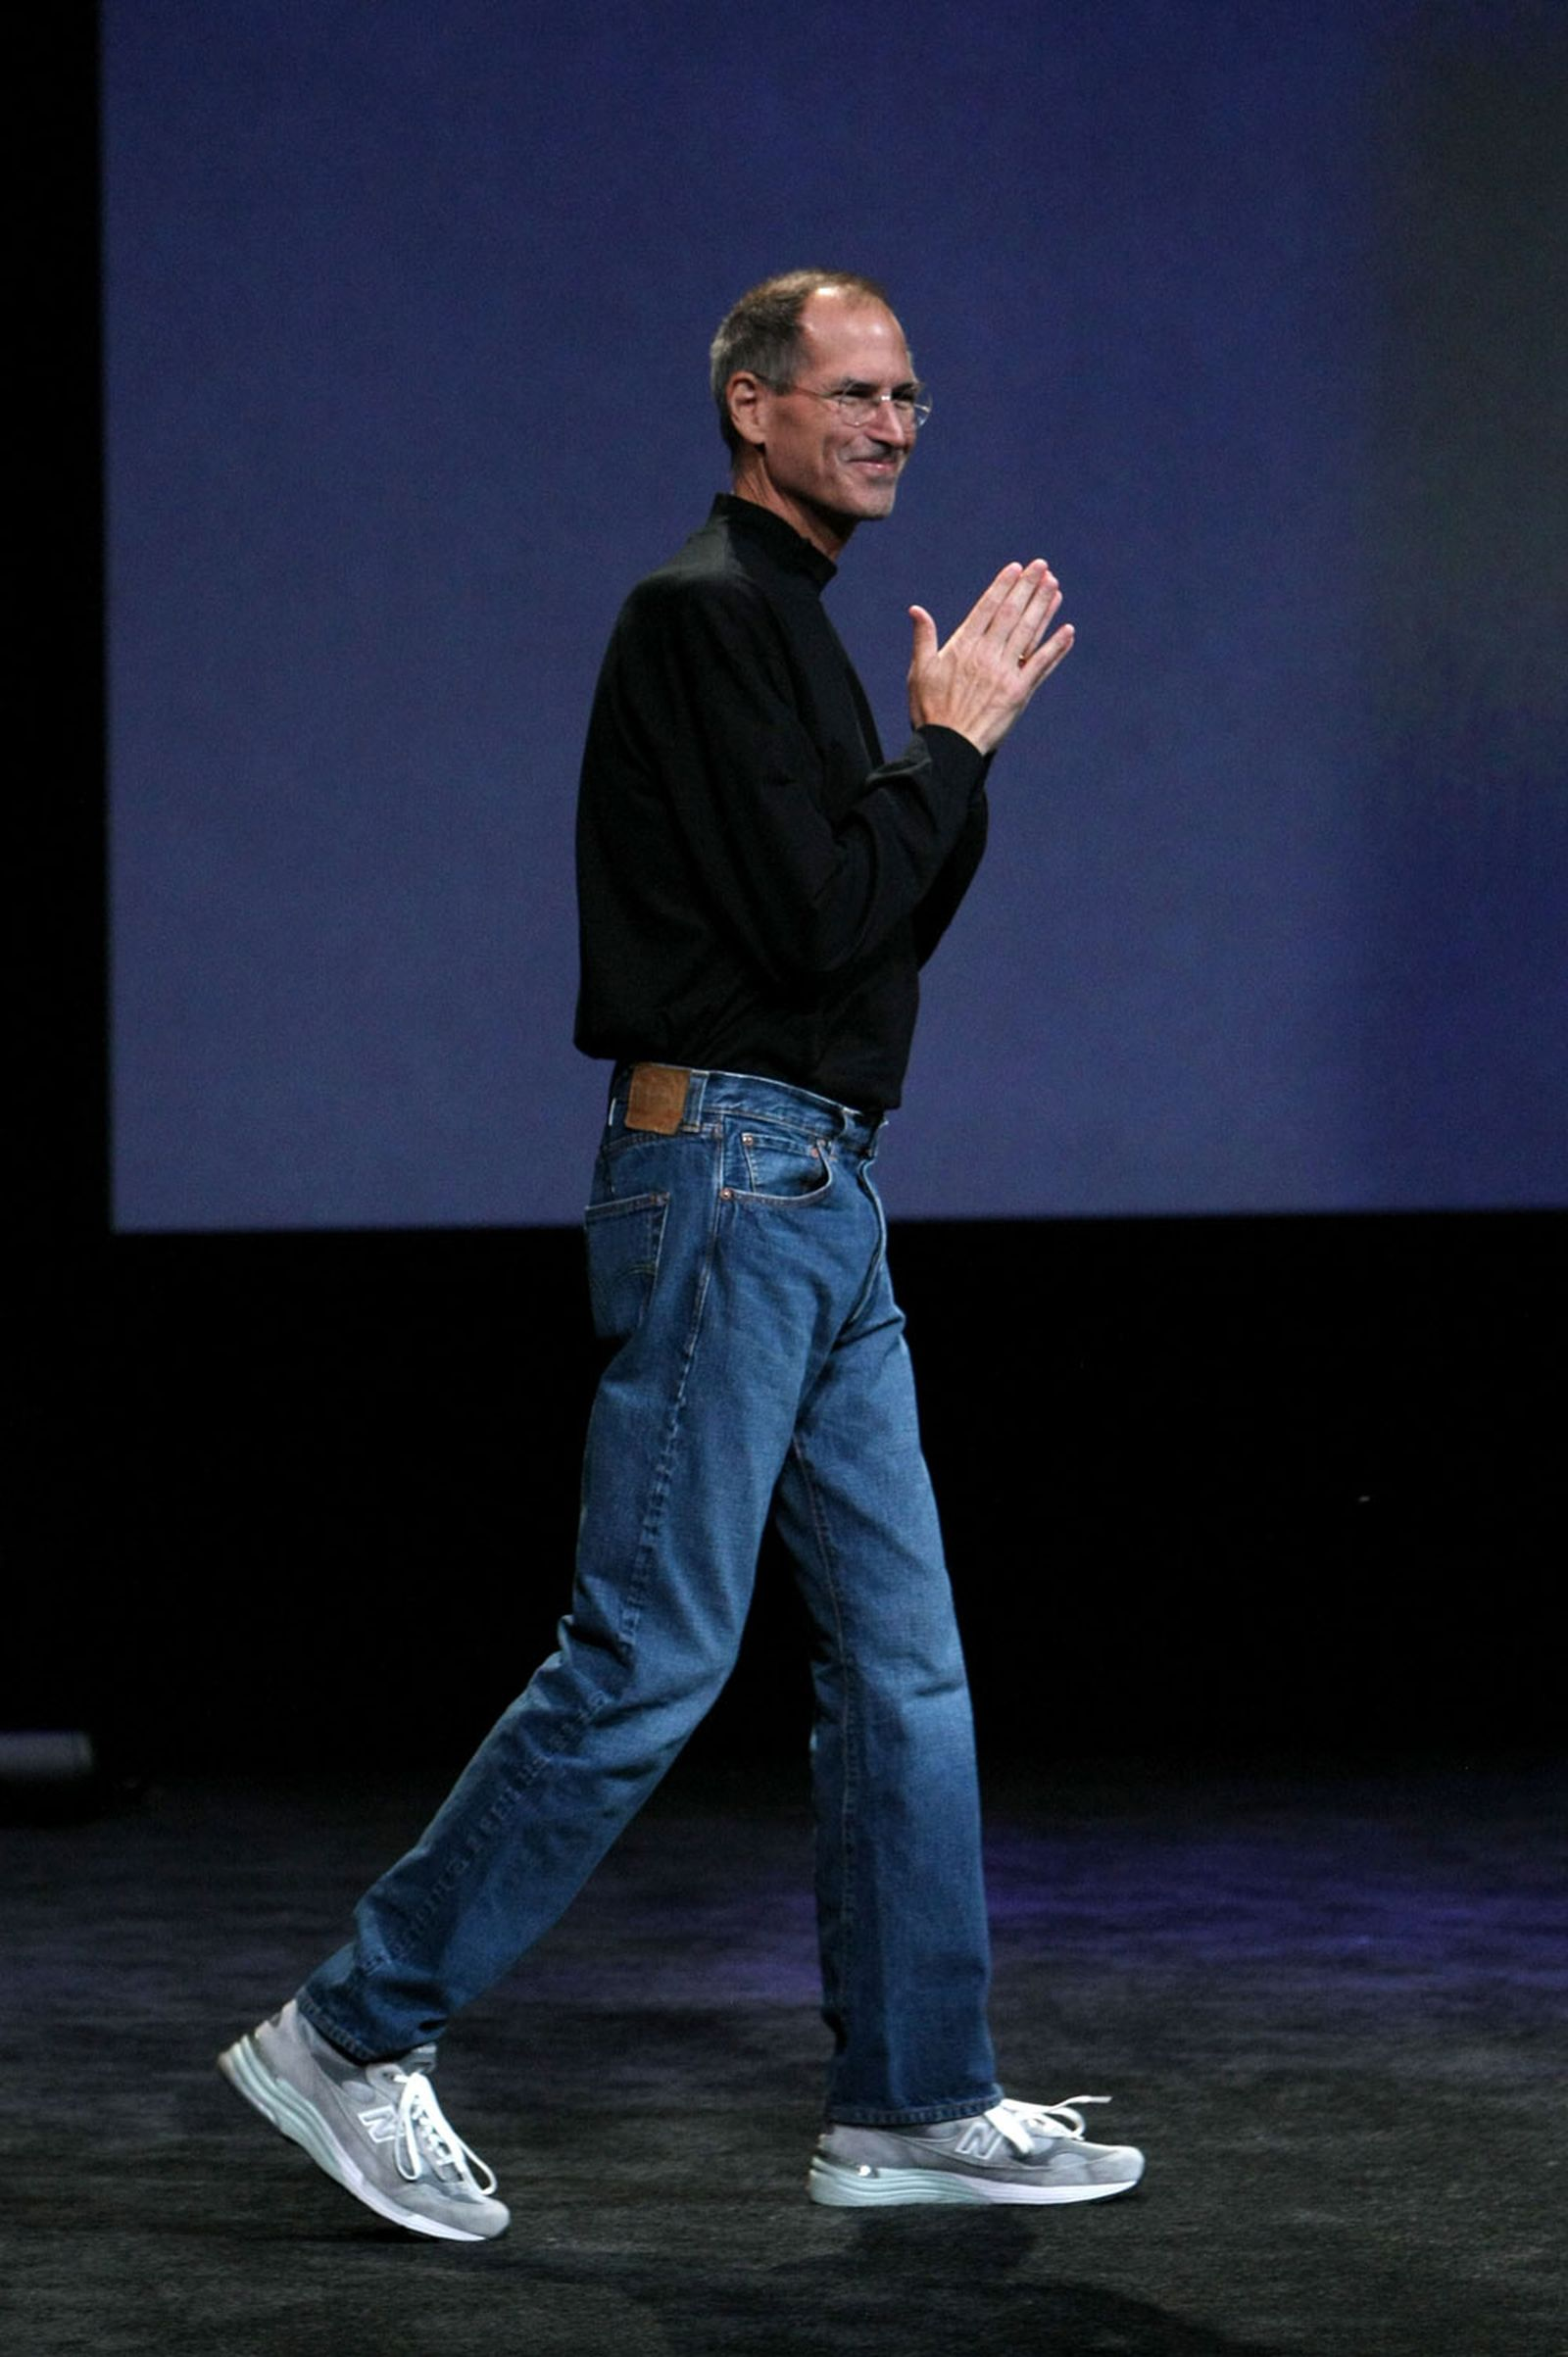 apple keynote 2019 nike new balance steve jobs